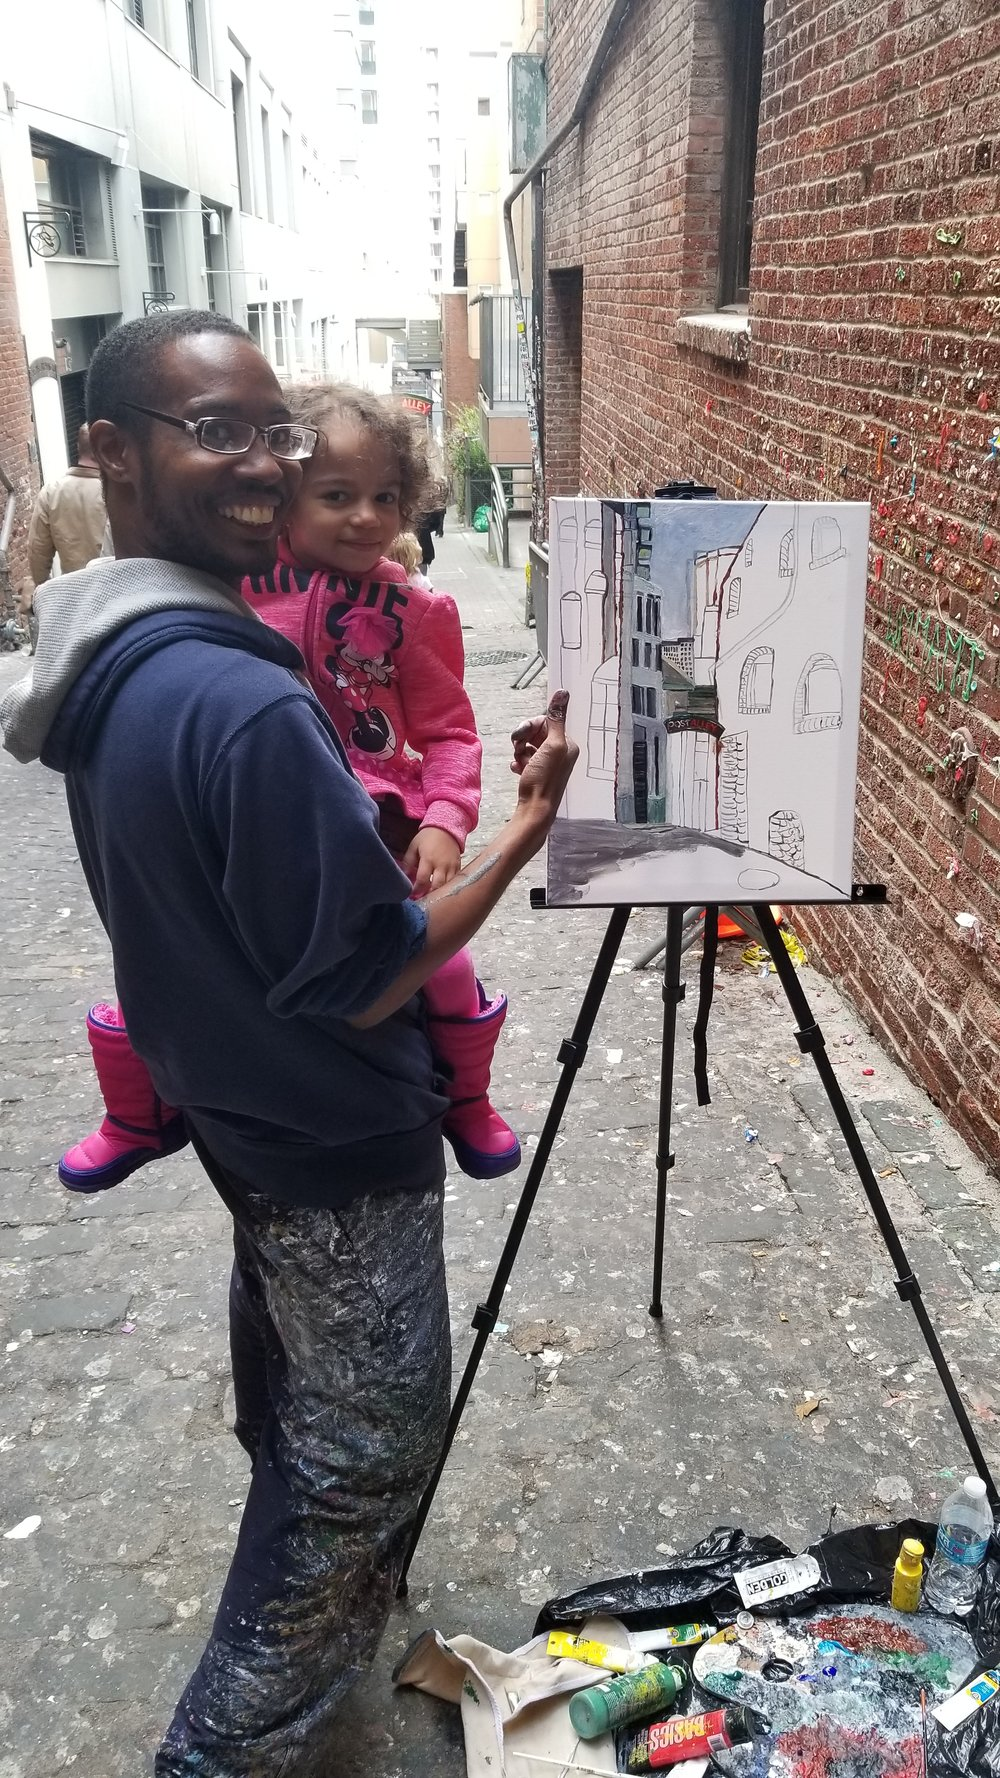 Me and my niece taking a phto together at my live painting show. Finially got to meet her for the first time and my other niece.